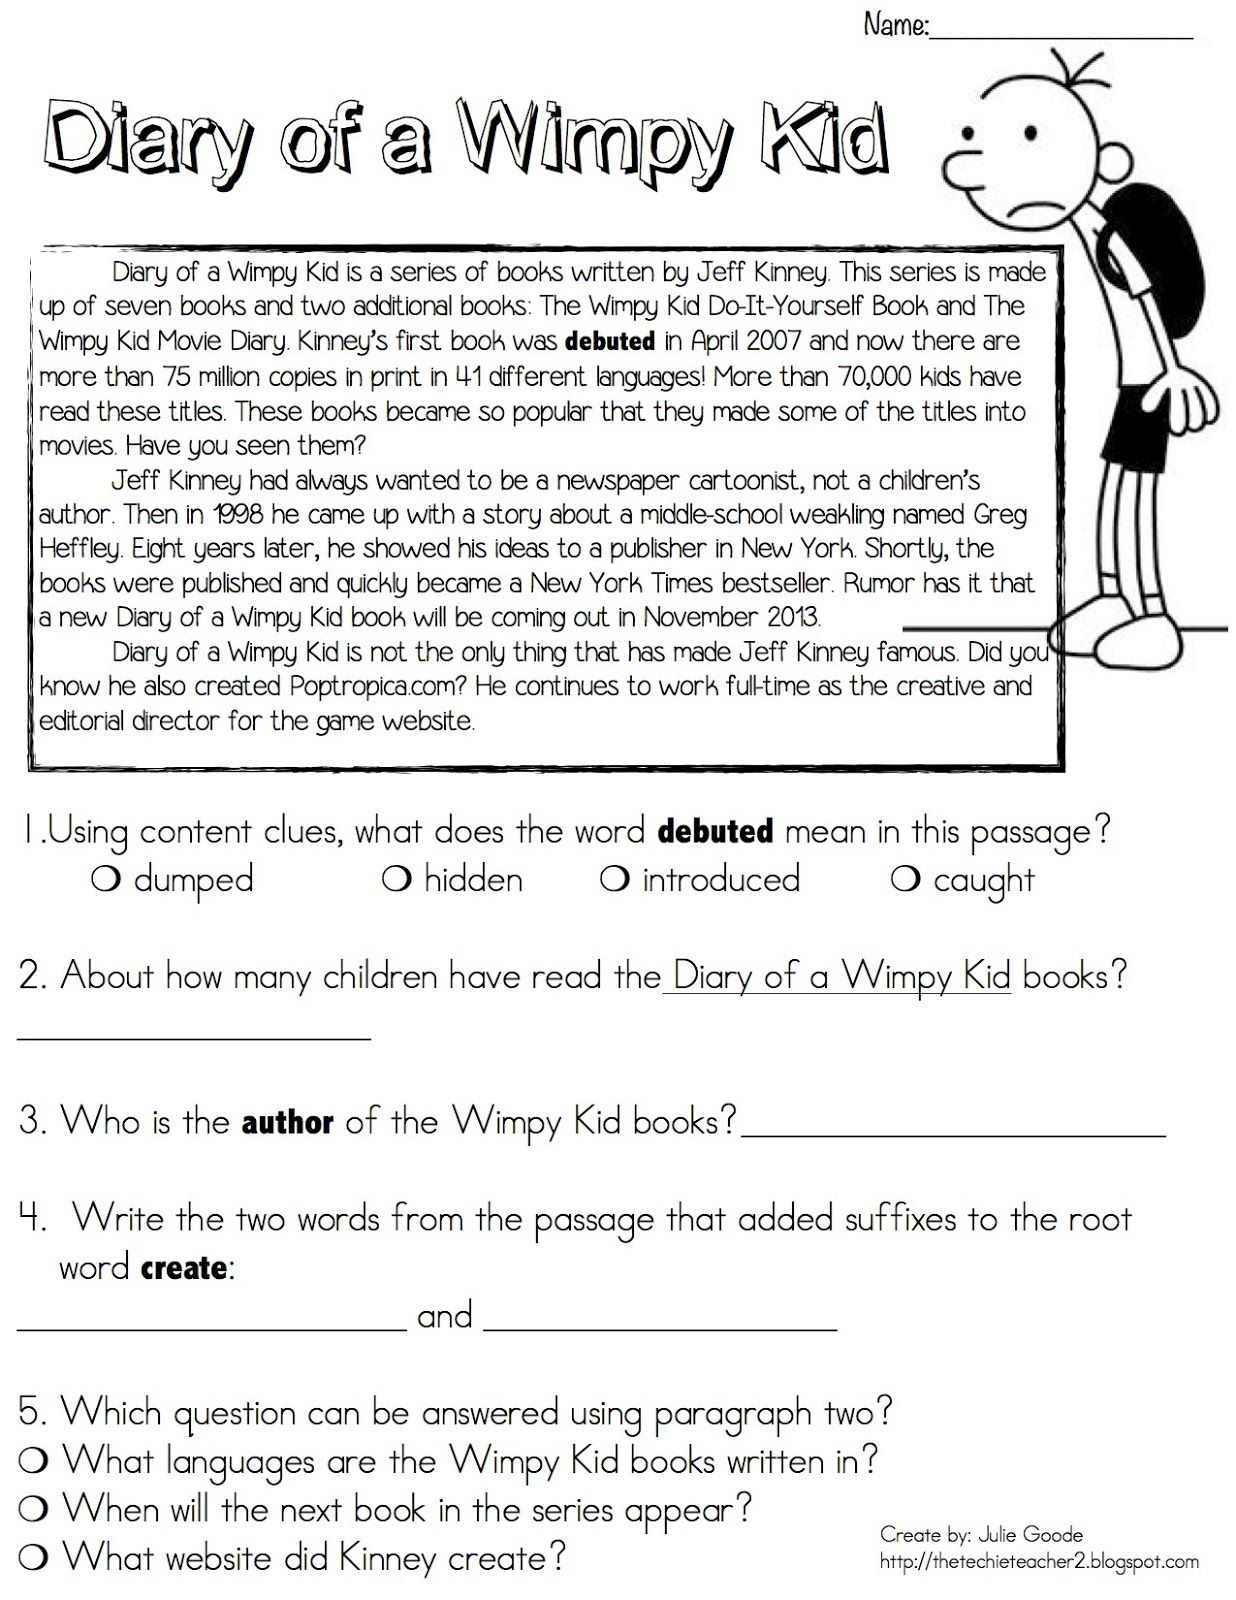 Worksheets Reading Comprehension Worksheets College diary of a wimpy kid reading passage freebie workshop with comprehension questions